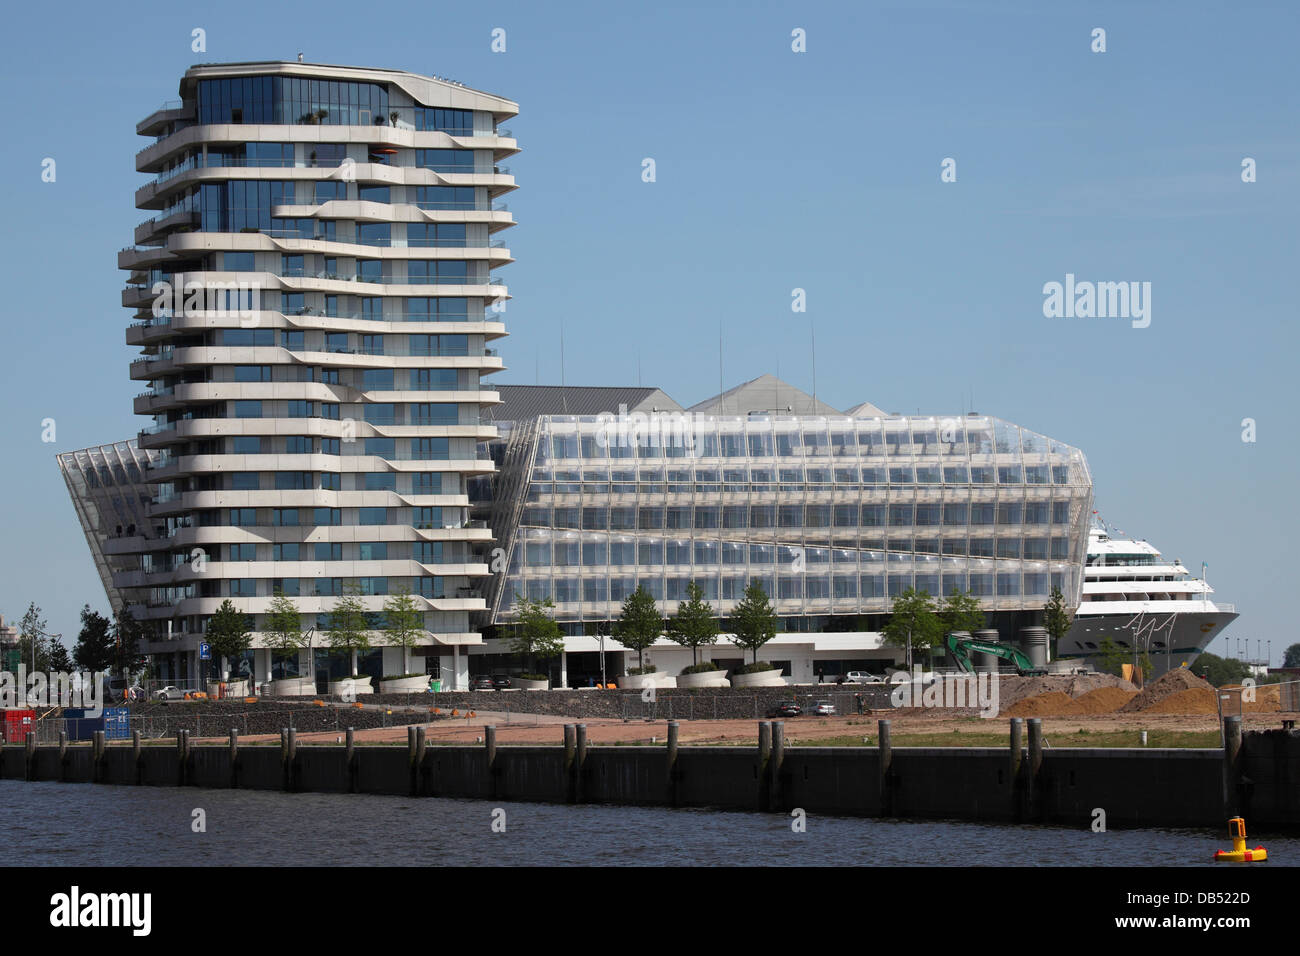 The Unilever building in the HafenCity district of Hamburg, Germany. - Stock Image